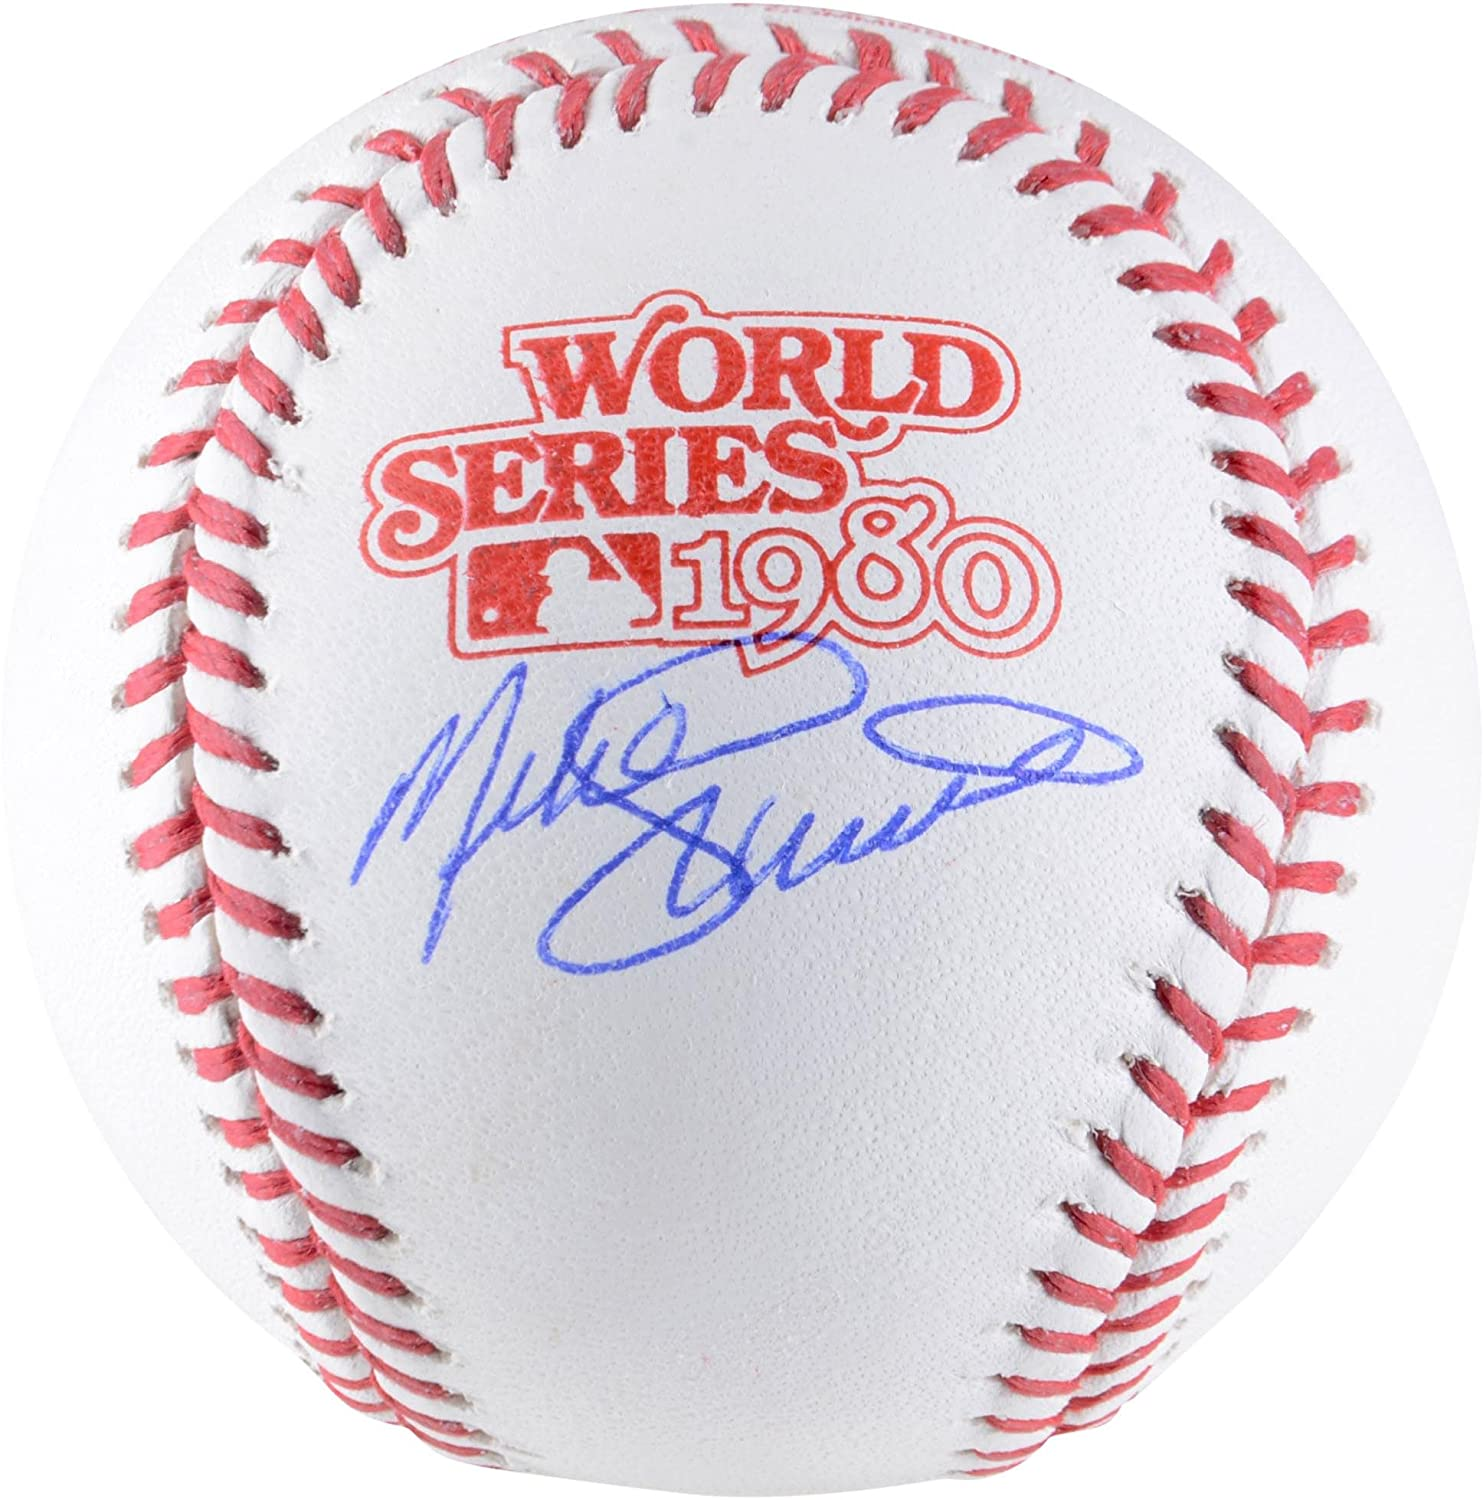 Mike Schmidt Philadelphia Phillies Autographed 1980 World Series Logo Baseball - Fanatics Authentic Certified